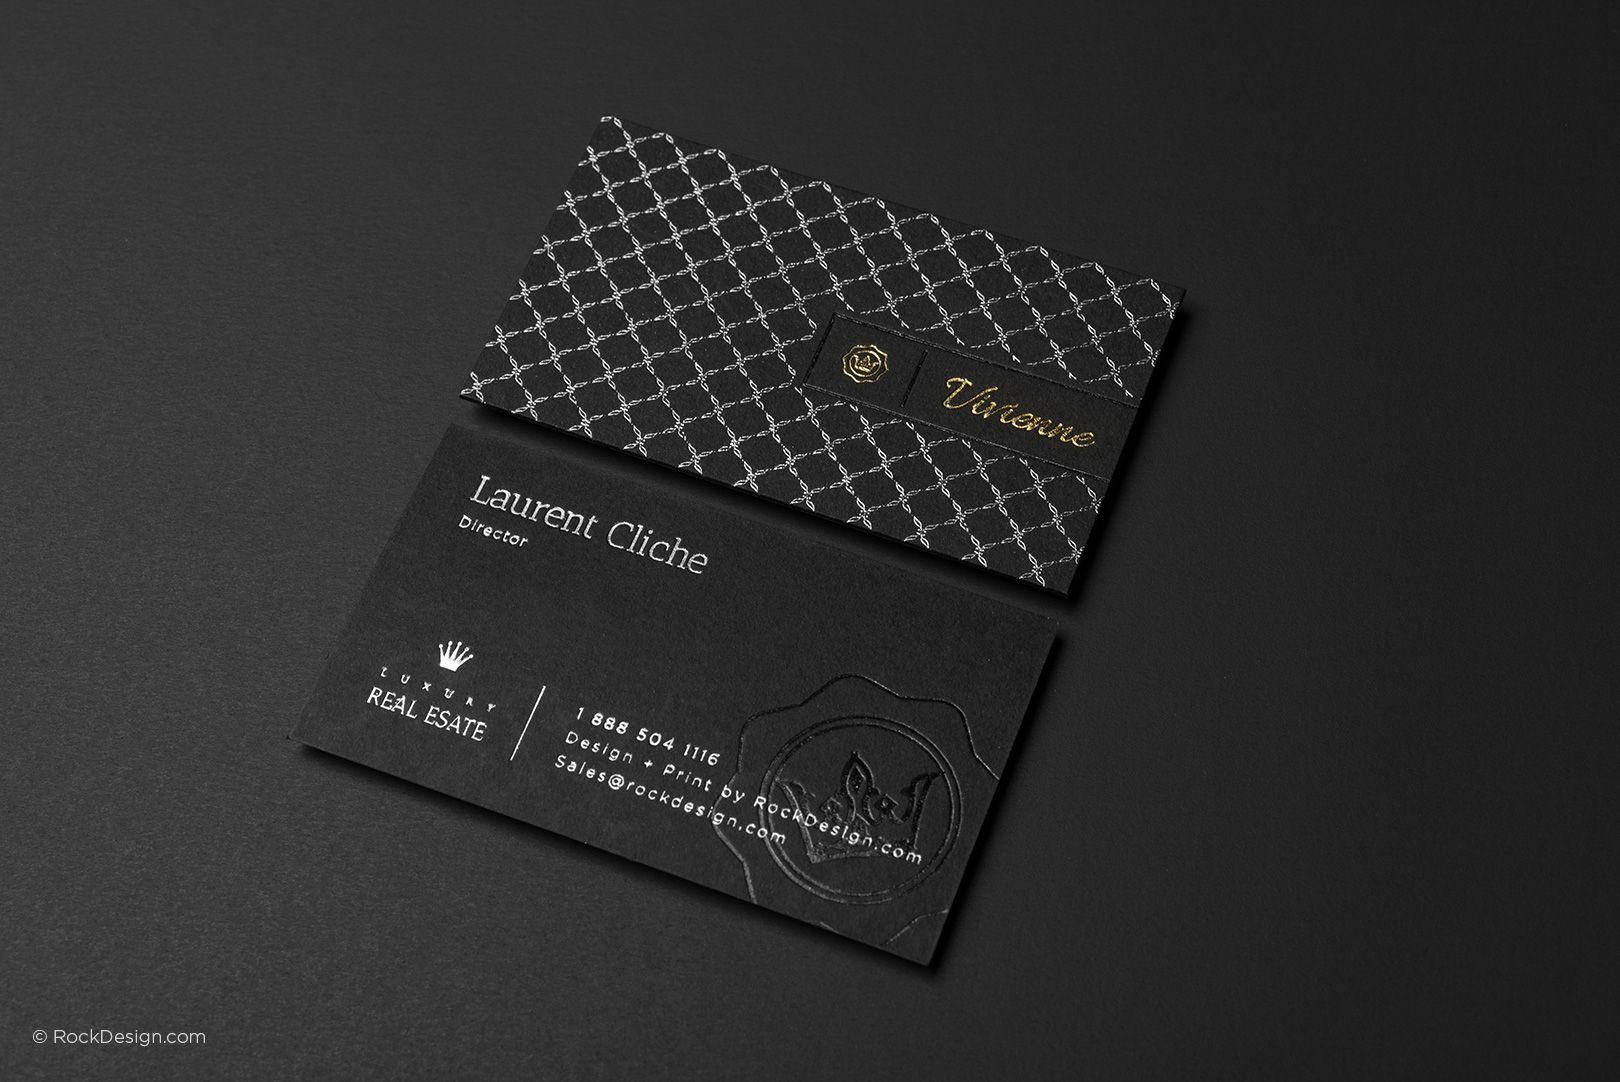 Black Business Cards | Office stationary | Pinterest | Black ...